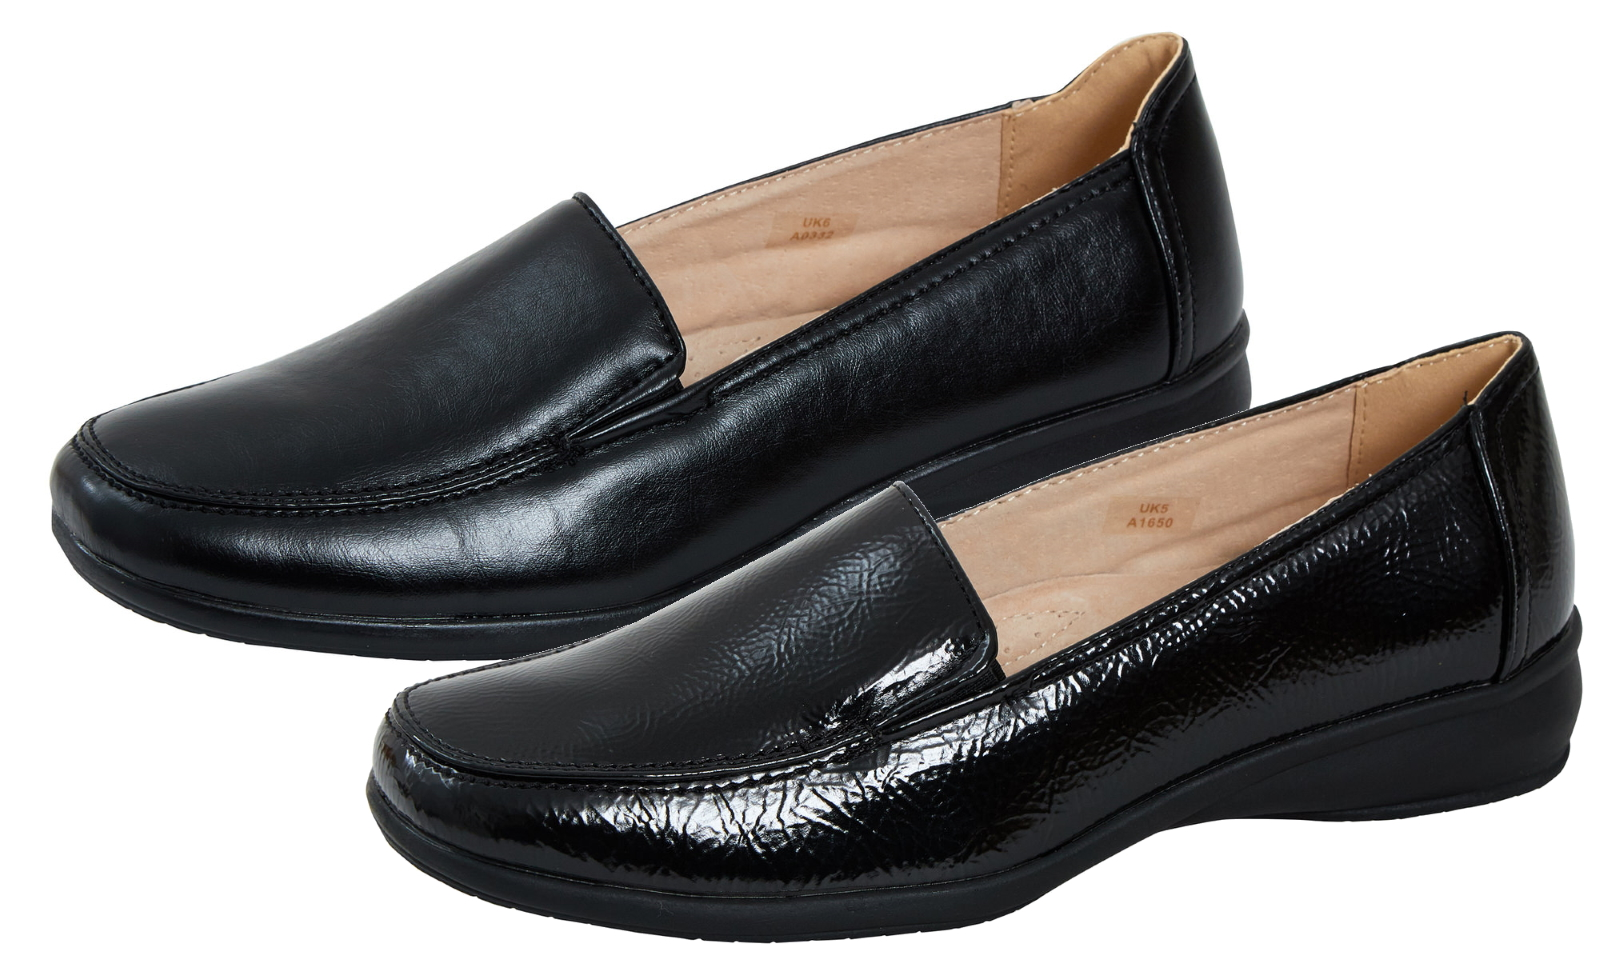 Shoes Ladies Leather Lined Flexible PU